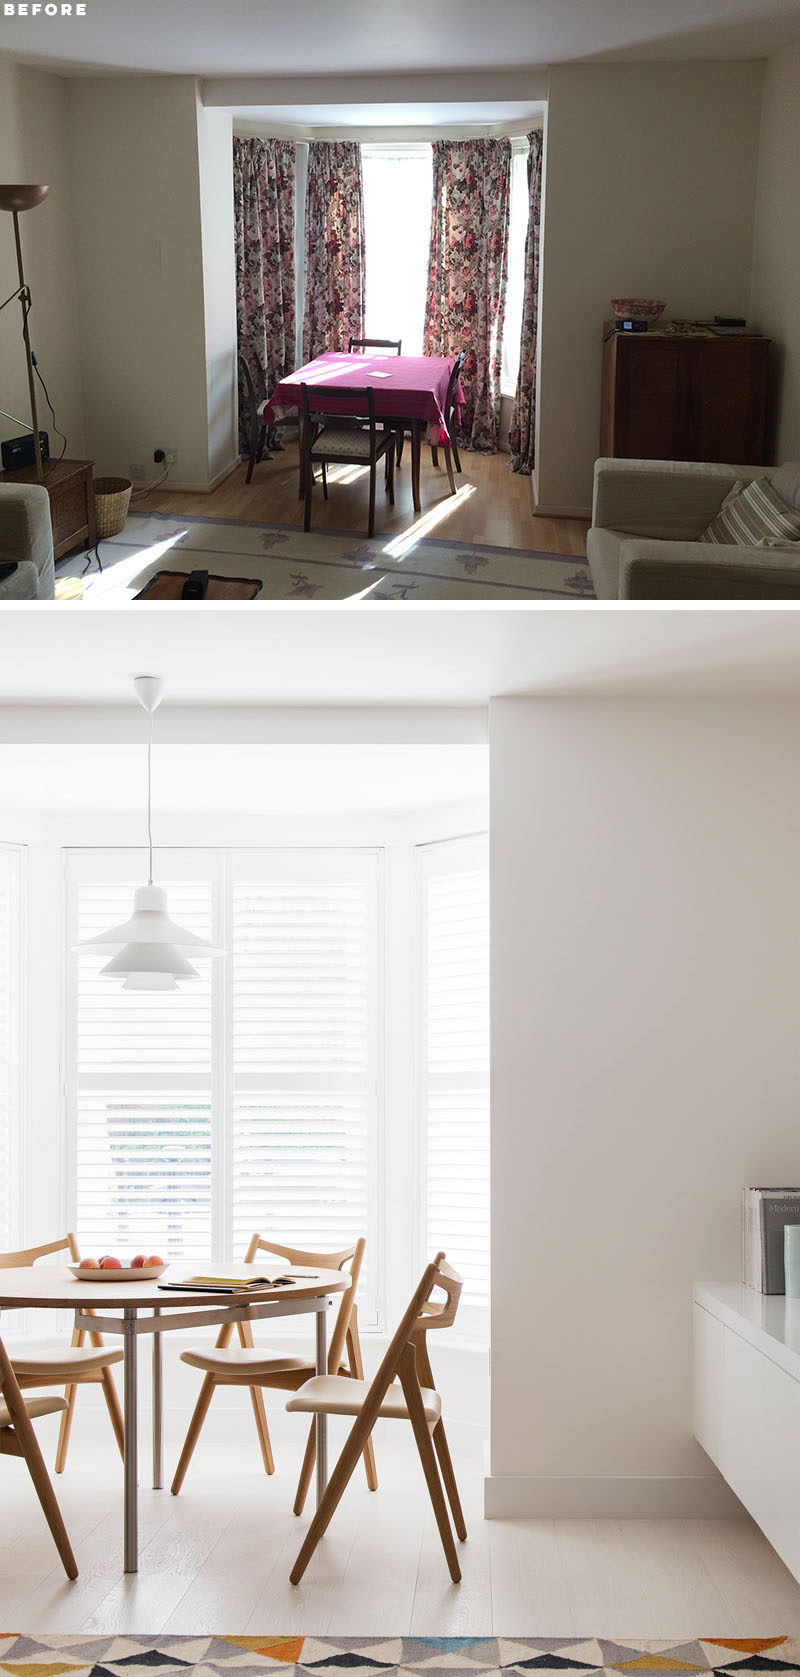 BEFORE & AFTER - Amos Goldreich Architecture has designed the modern renovation of a 2 bedroom flat in Primrose Hill, London, for their clients who wanted to maximize the space as much as possible and make their flat feel larger. #Renovation #ModernRenovation #BayWindow